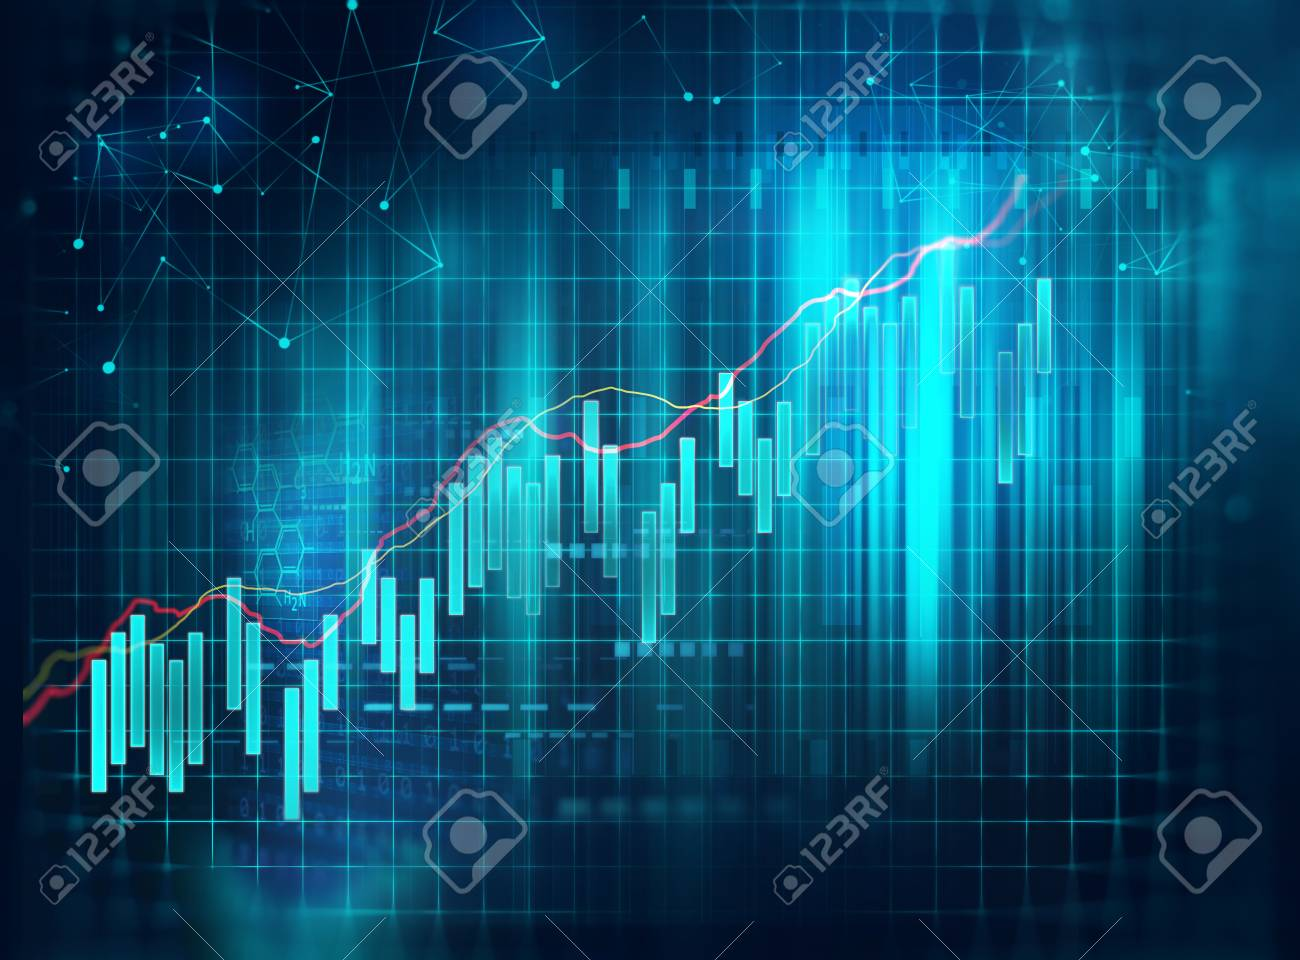 financial stock market graph on technology abstract background - 80673992